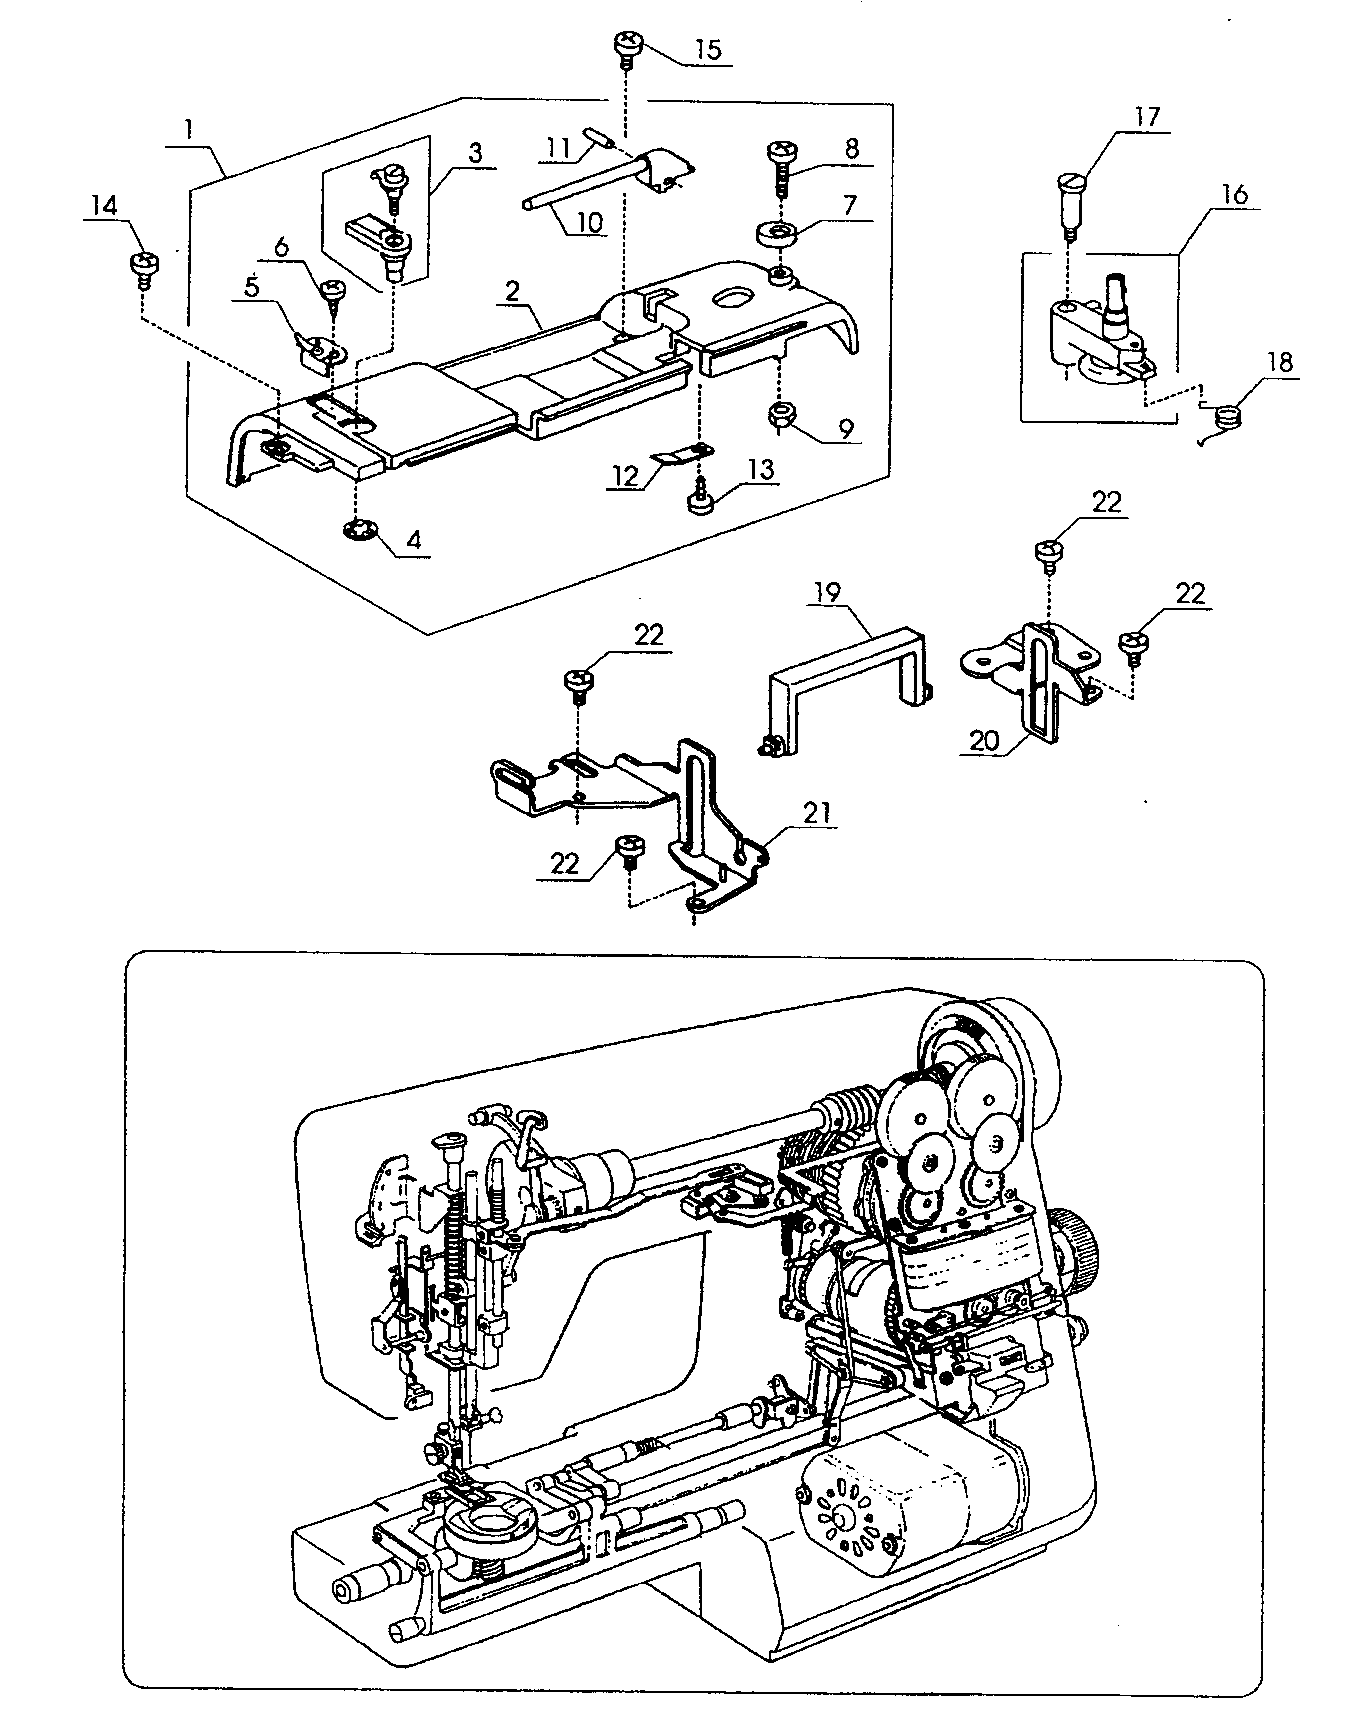 Sew Machine Mechanical Drawing